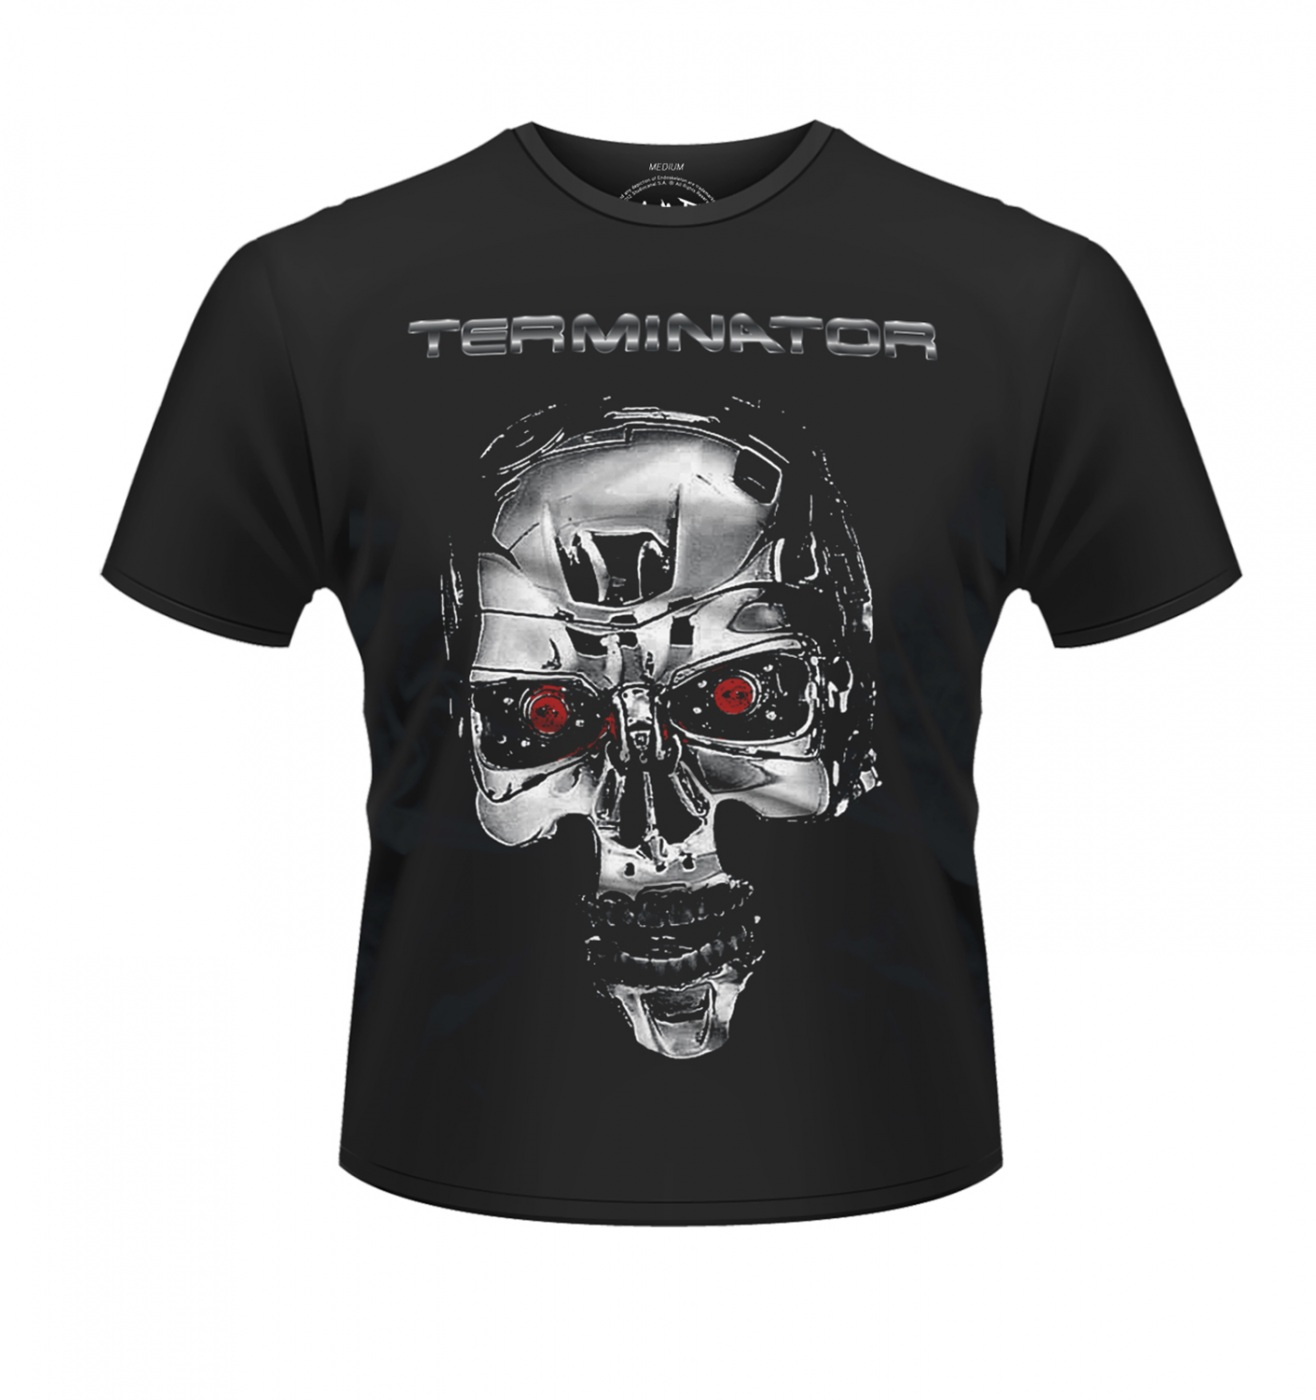 Terminator Endoskeleton t-shirt - Official